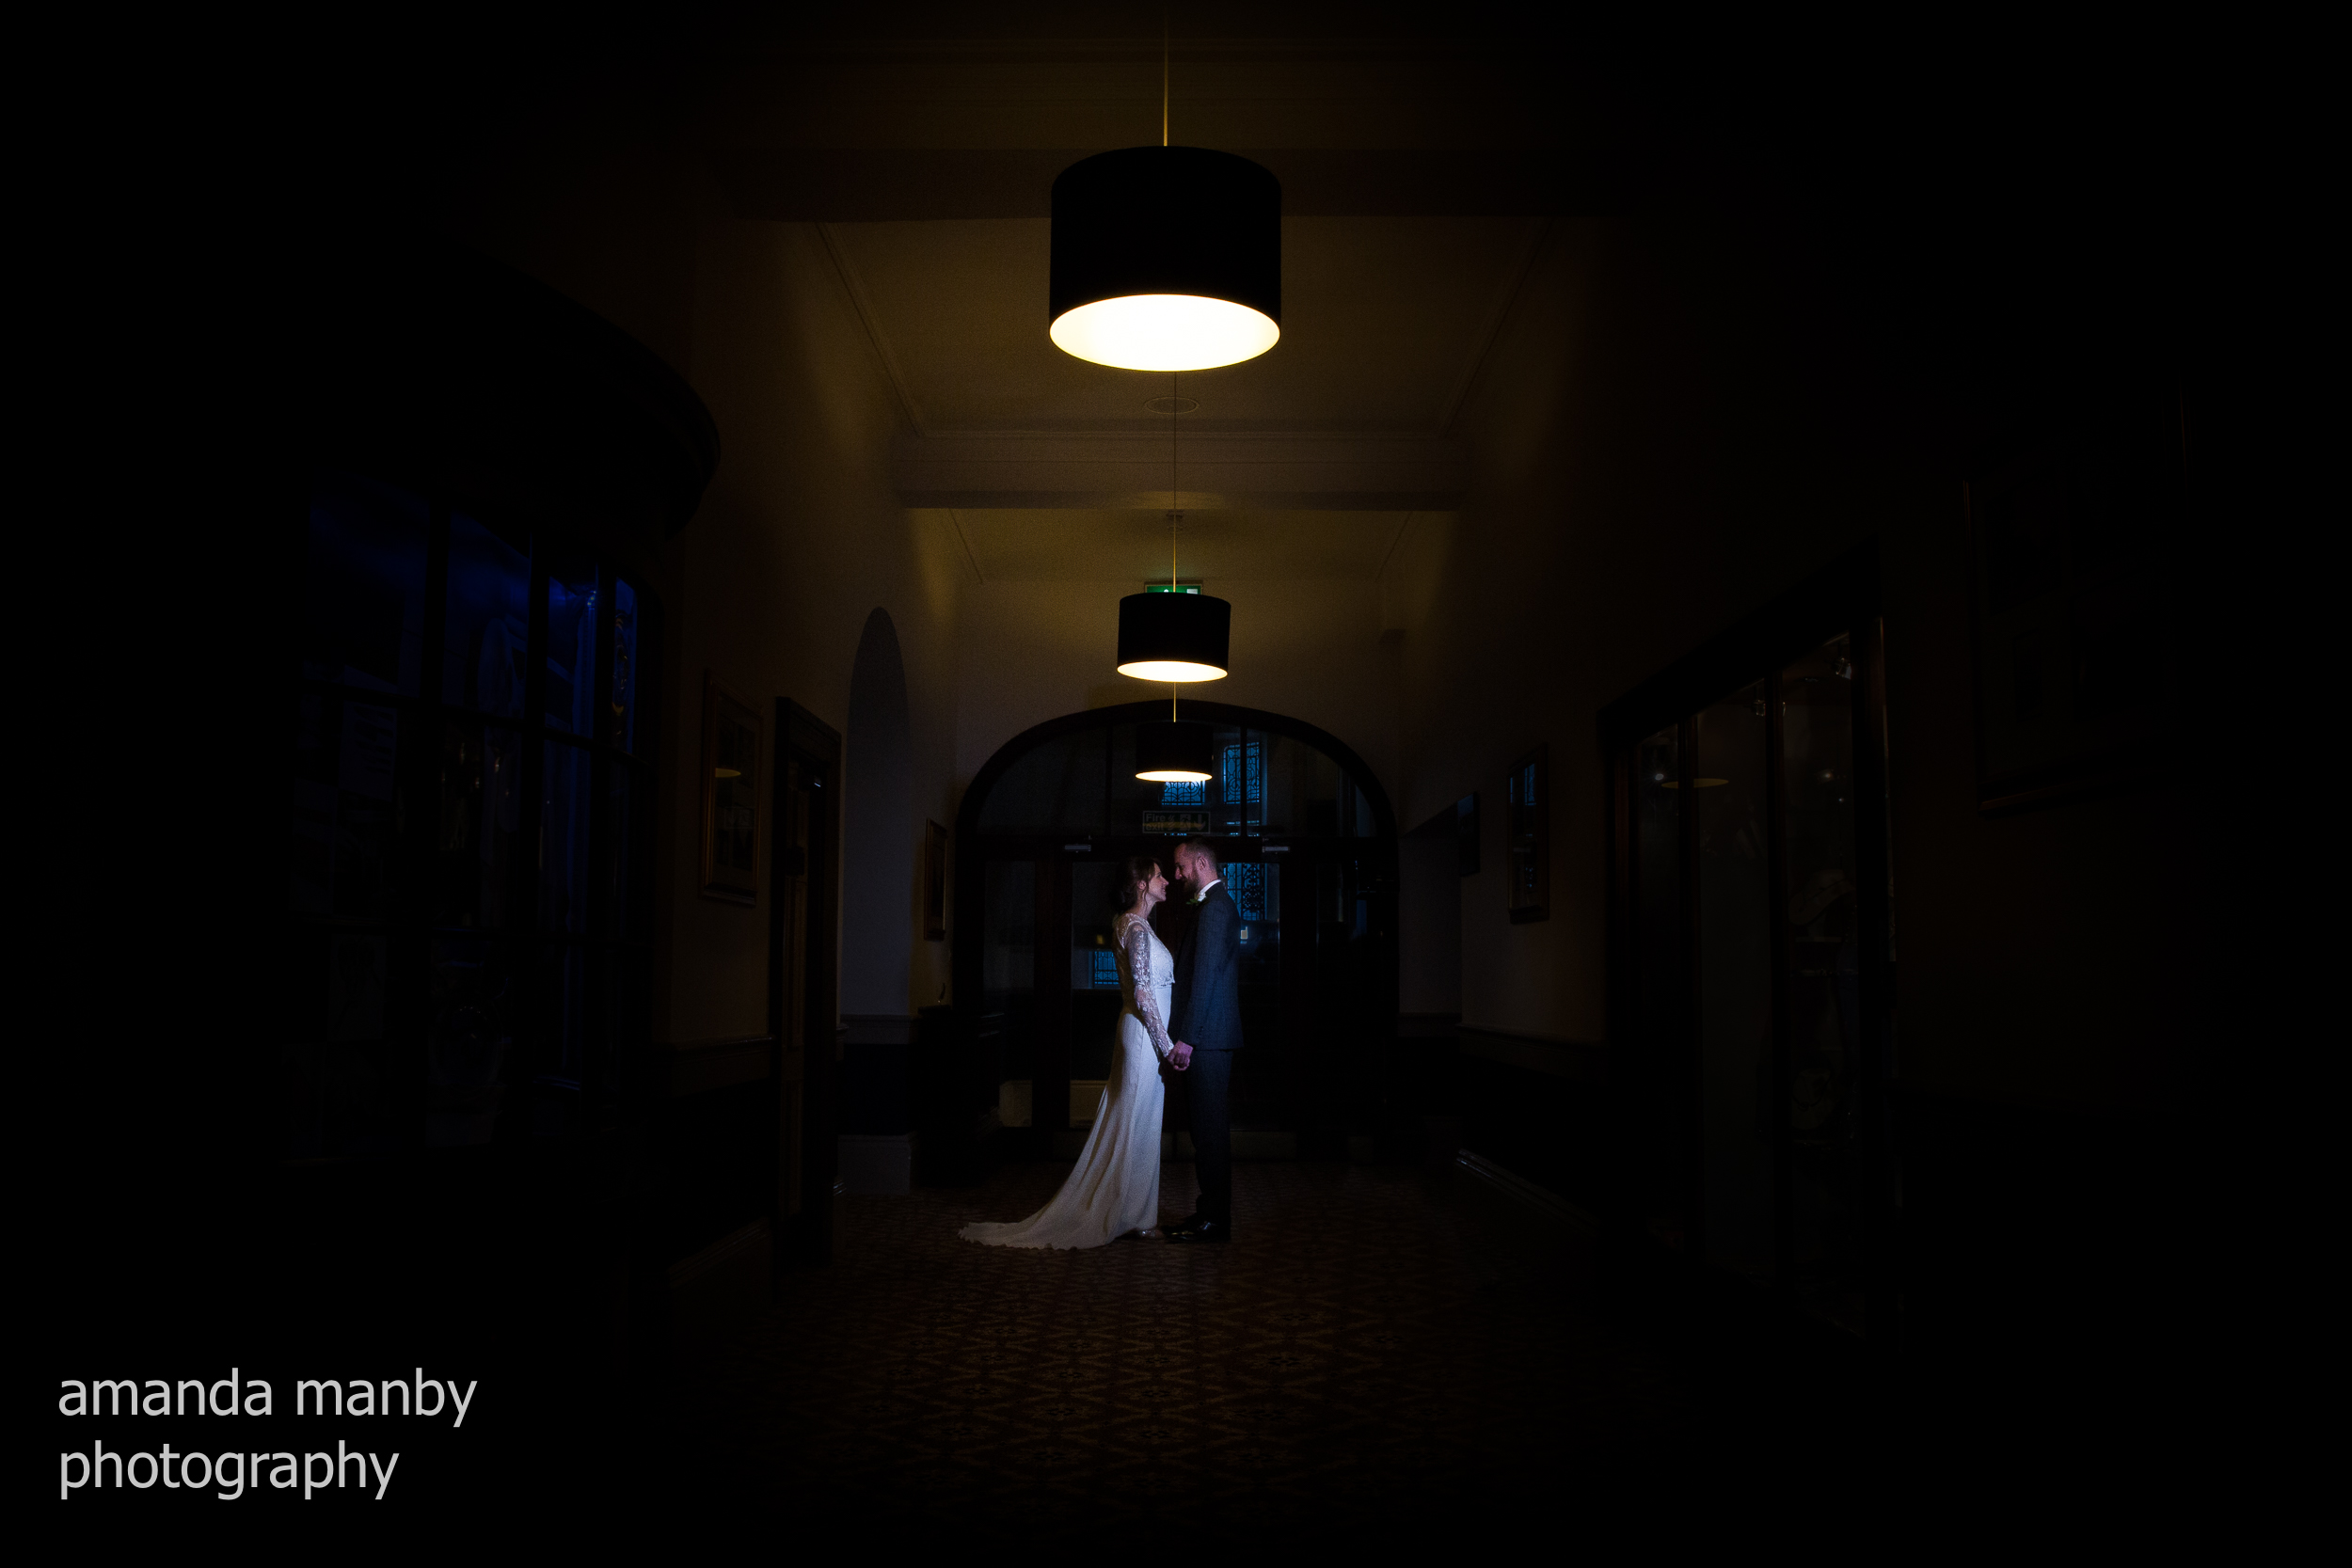 Creative wedding photography harrogate